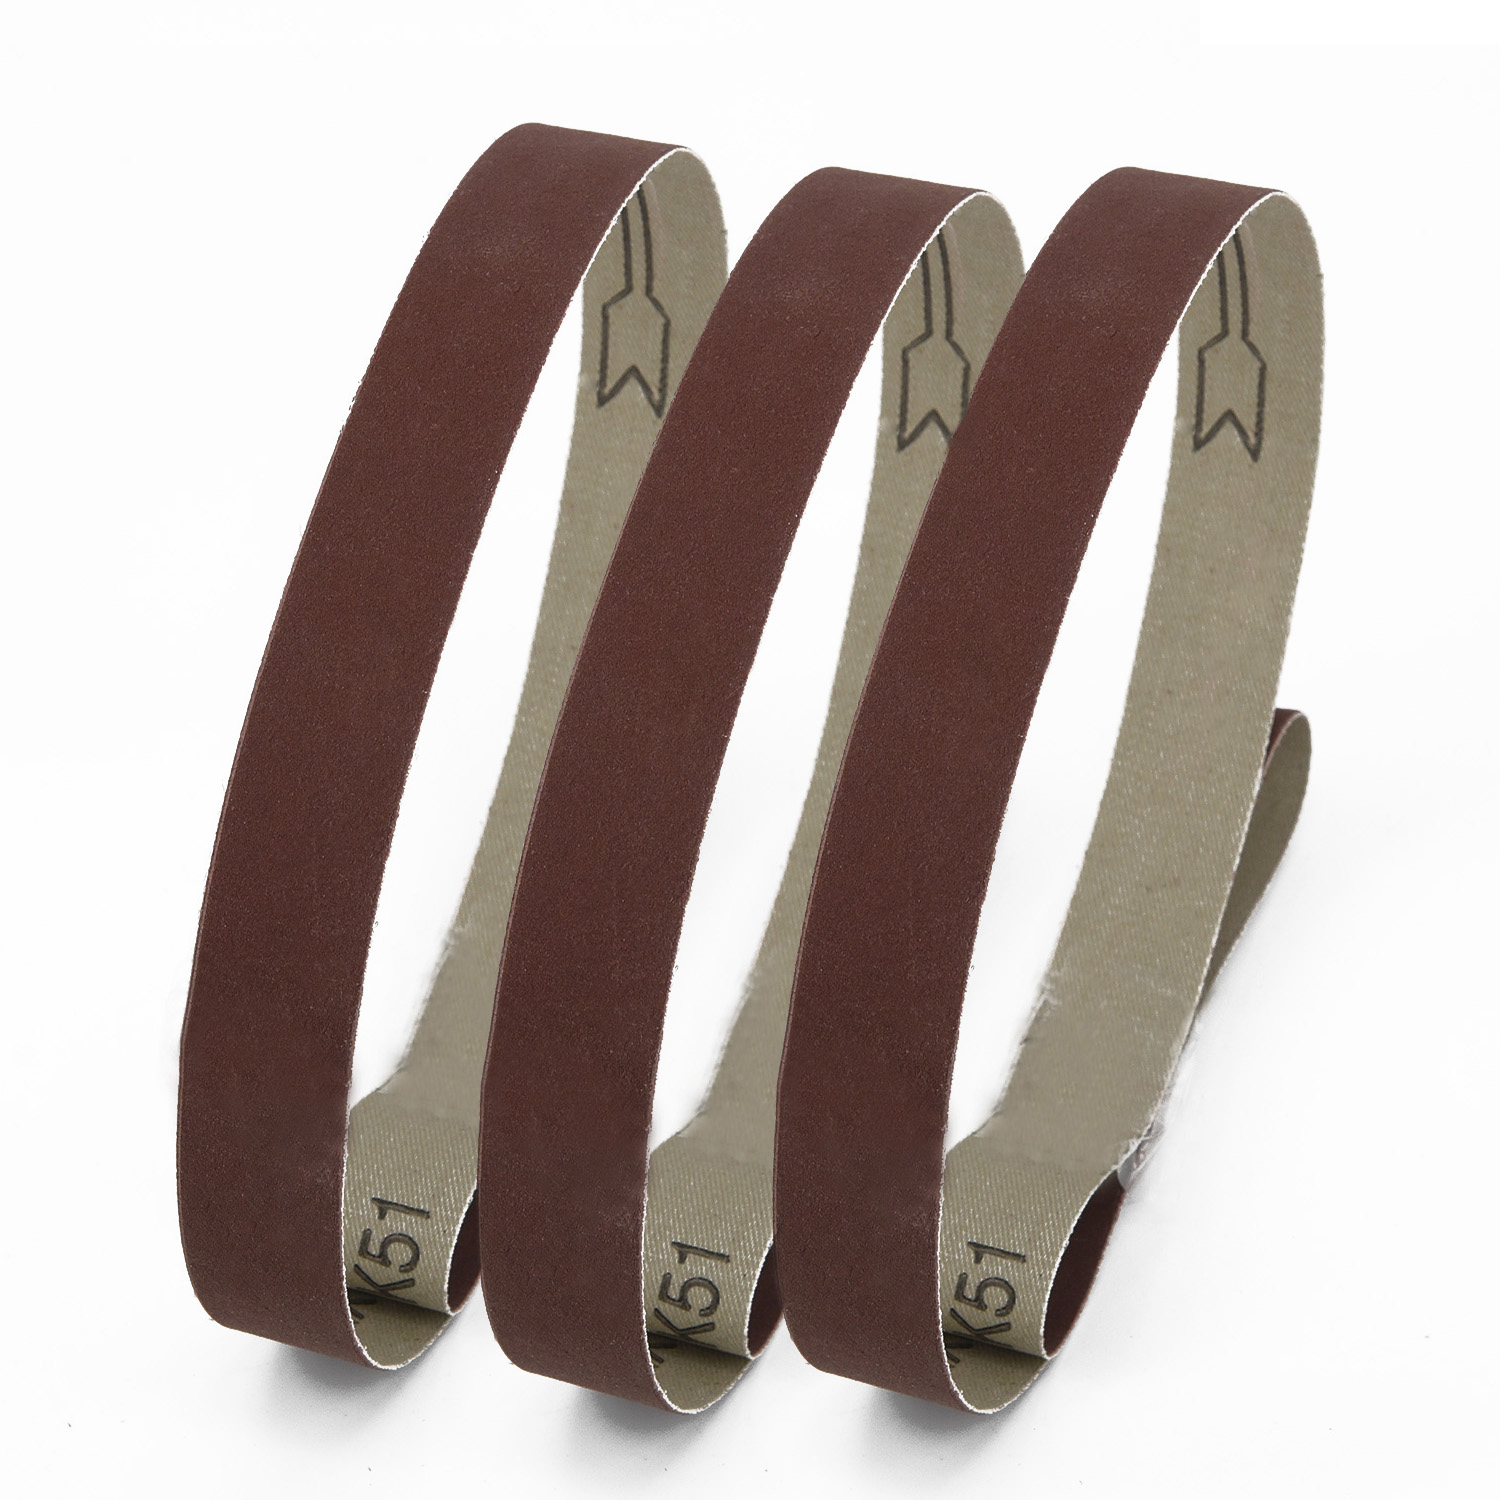 Sanding Belts High Performance 25mmx762mm Polishing Aluminum Oxide Practical Hot